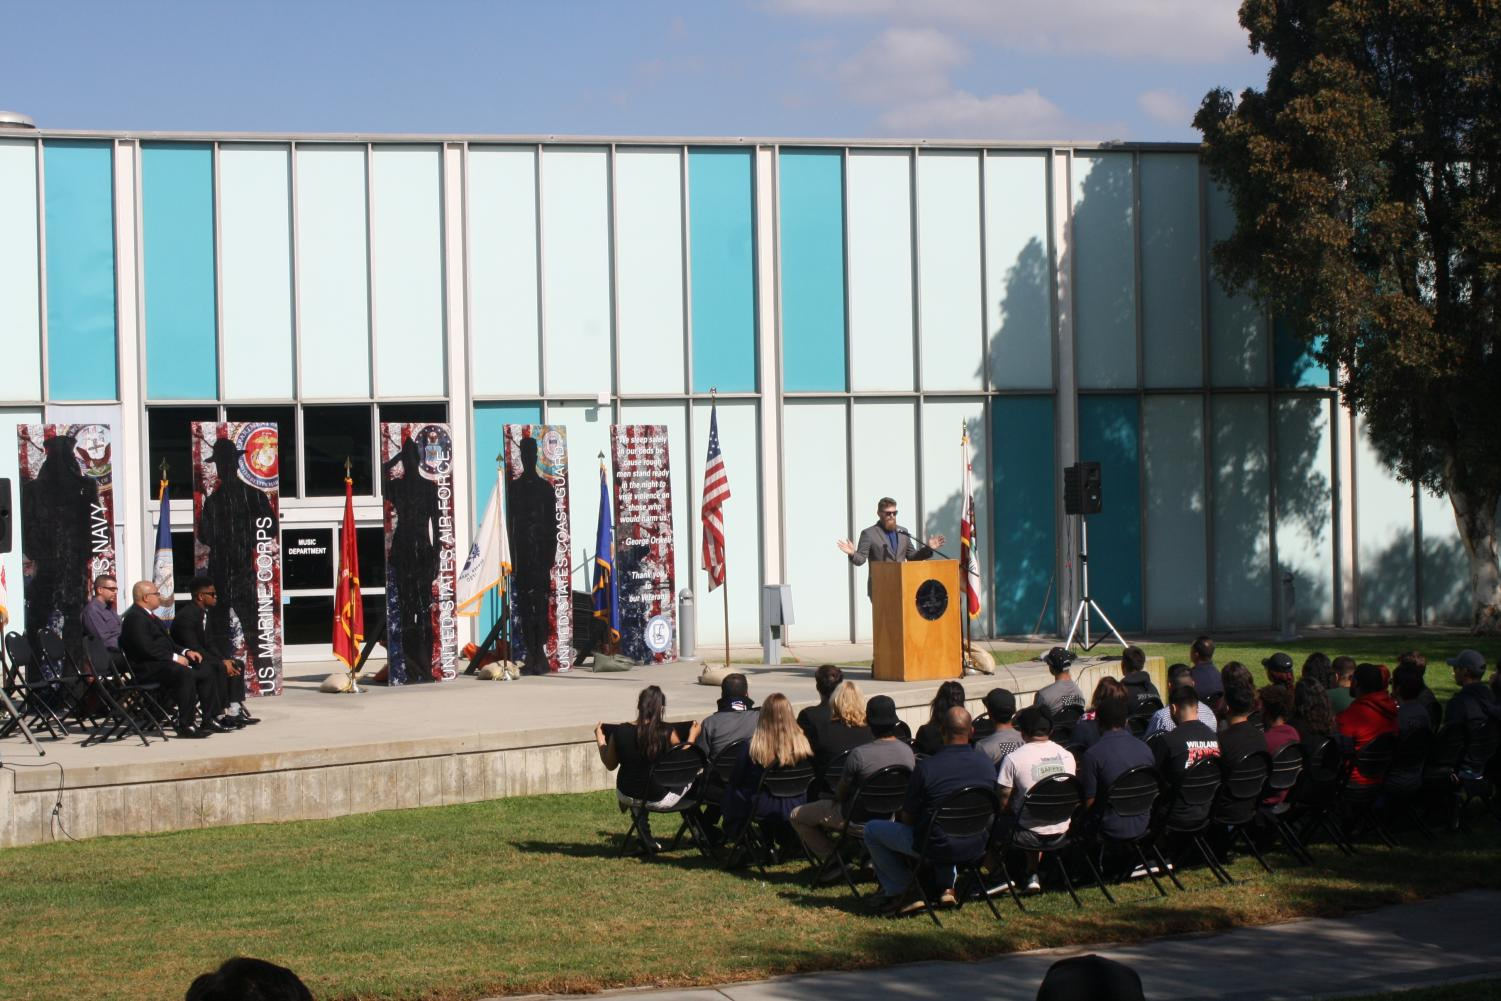 Veterans honored in commemoration ceremony